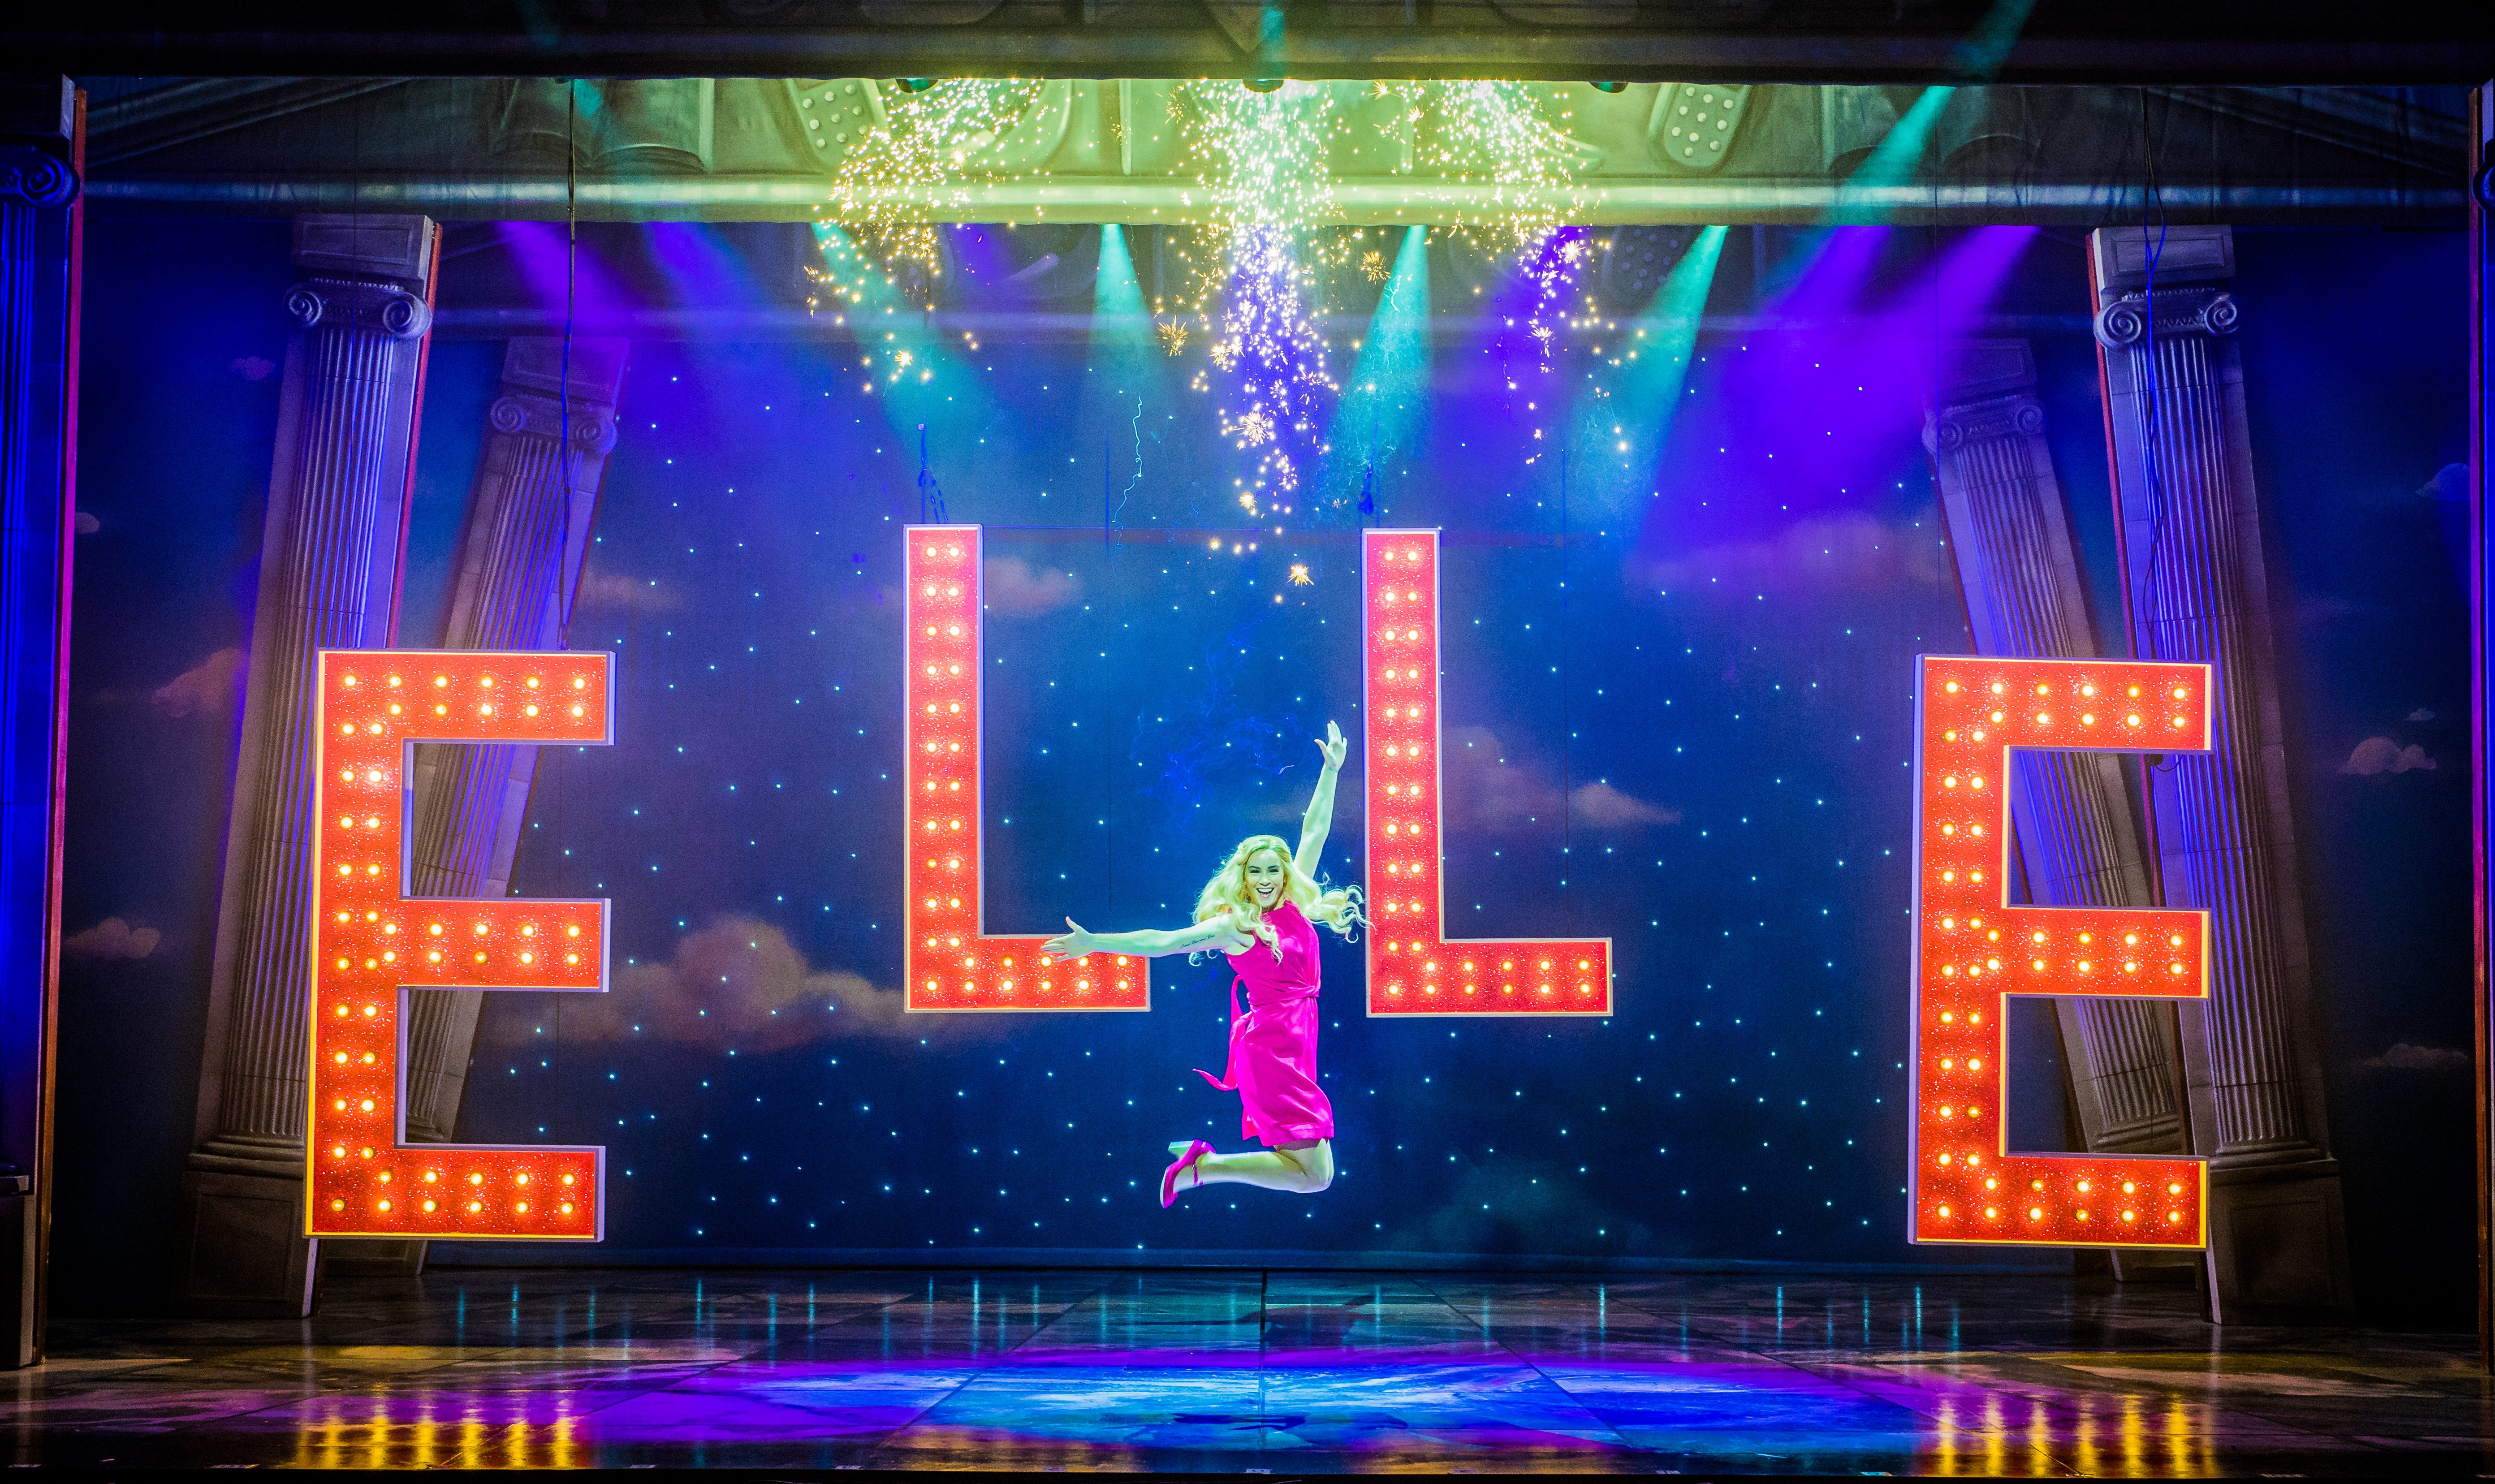 """Lucie Jones as Elle Woods in Legally Blonde the musical. She is wearing a pink dress and jumping in the air, in front of huge, brightly lit red letters spelling out """"Elle""""."""